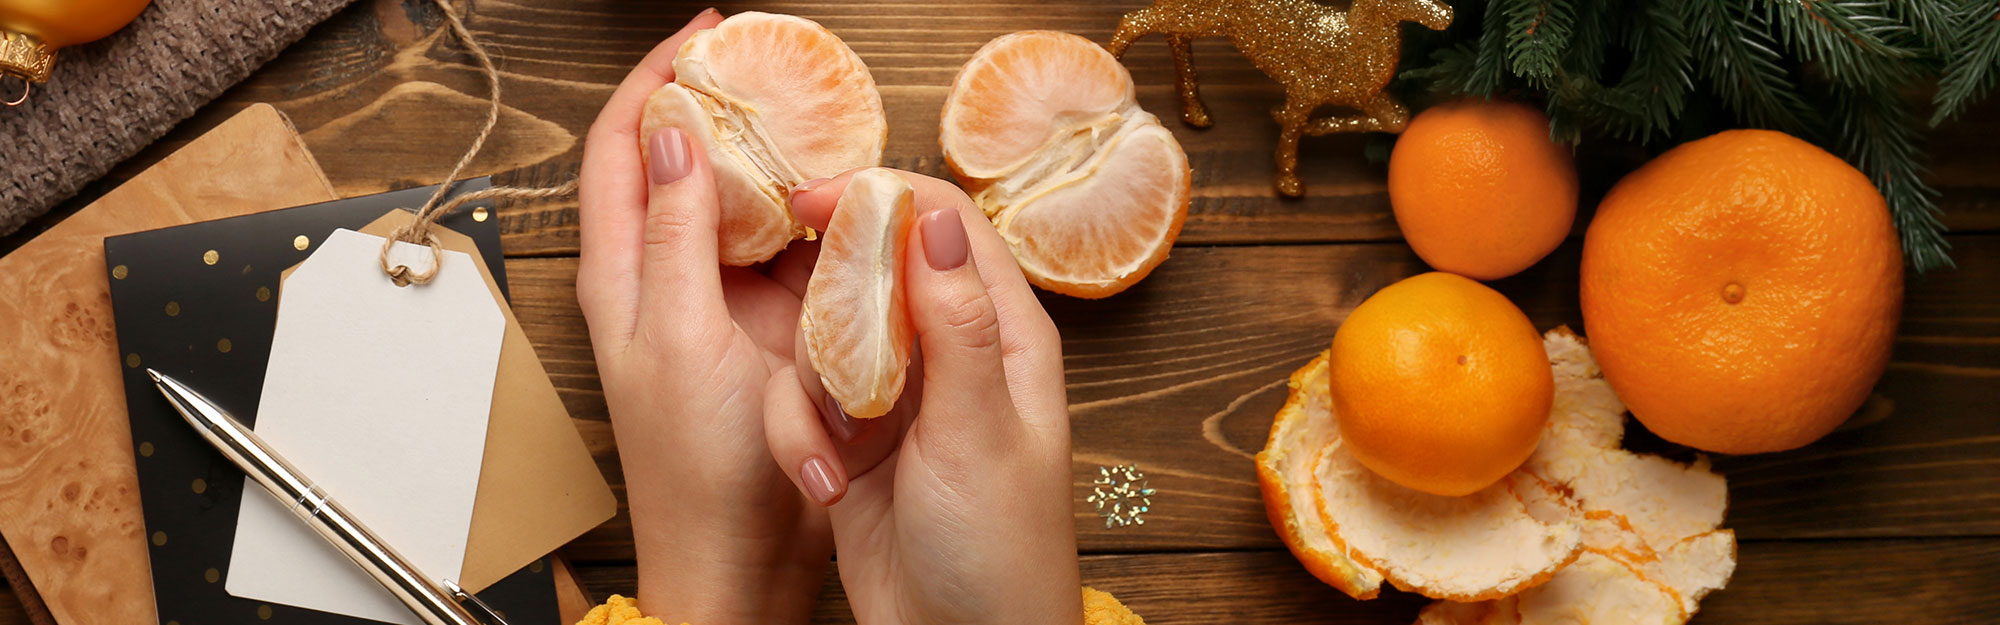 Peeling clementines among christmas decorations.